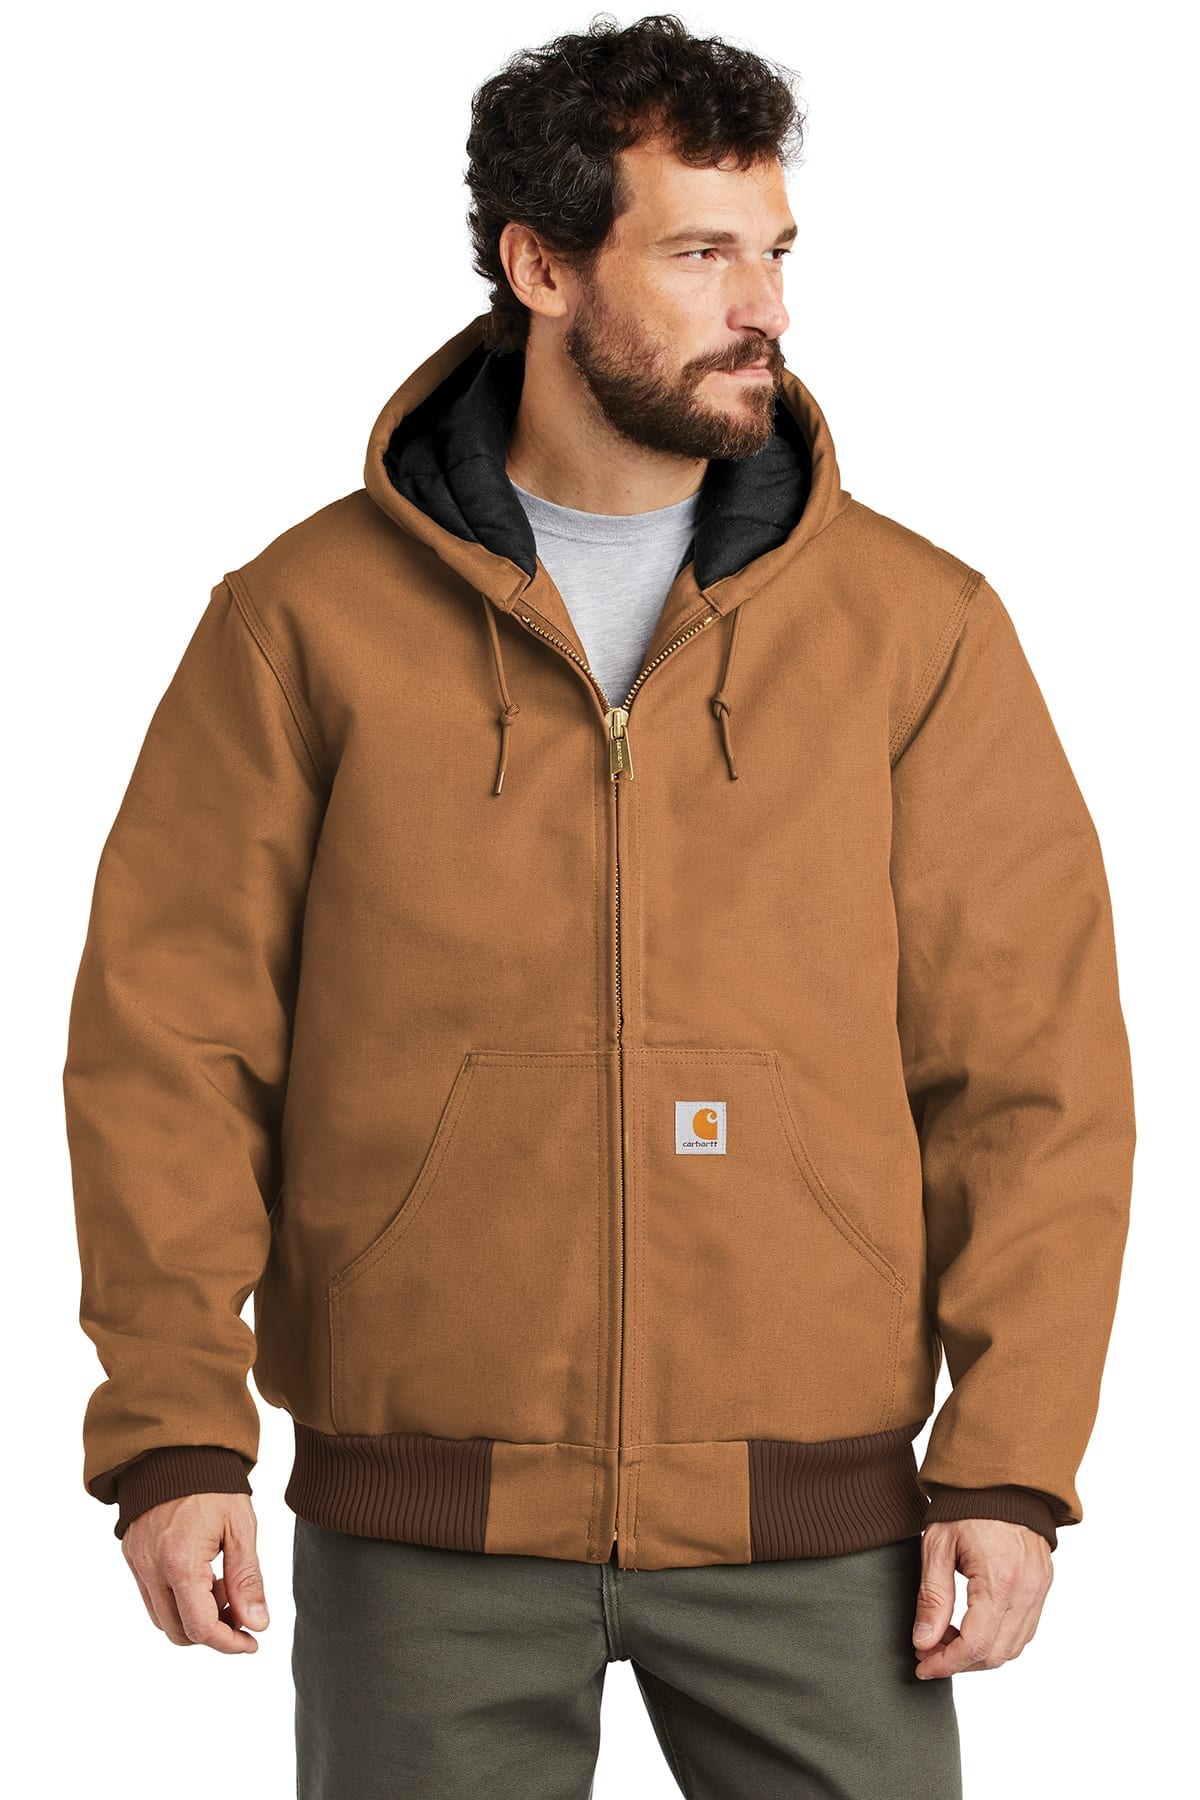 Details about  /Carhartt Men/'s Big /& Tall Quilted Flannel Lined Duck Active Jac